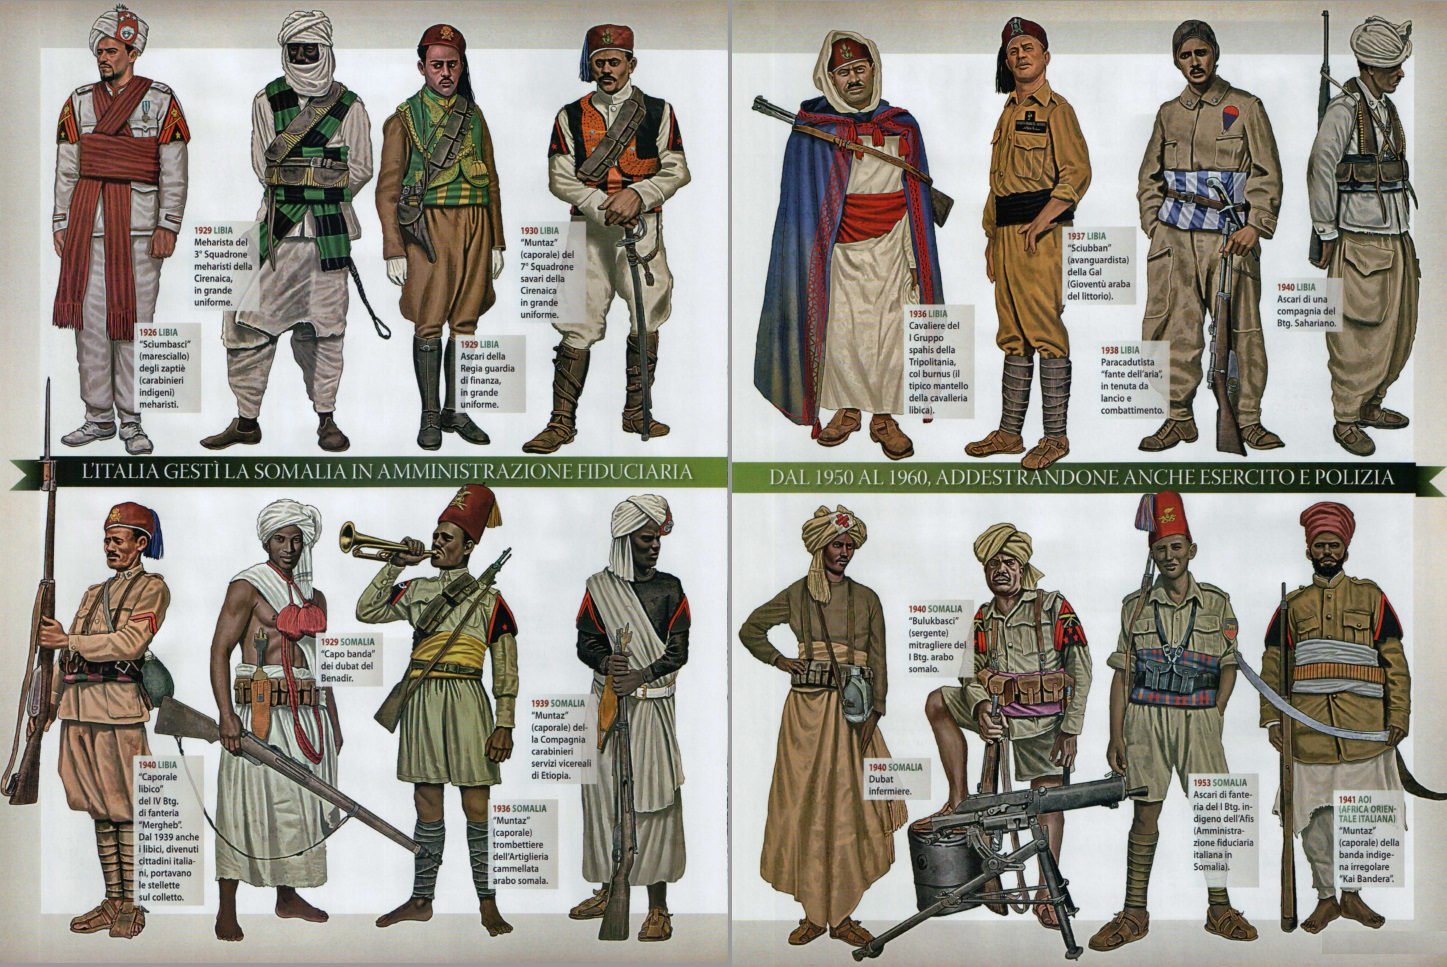 colonial policy It argues that despite the frequency of administrative and personnel changes in the protectorate during this period, the second republic's colonial policies remained fairly consistent.